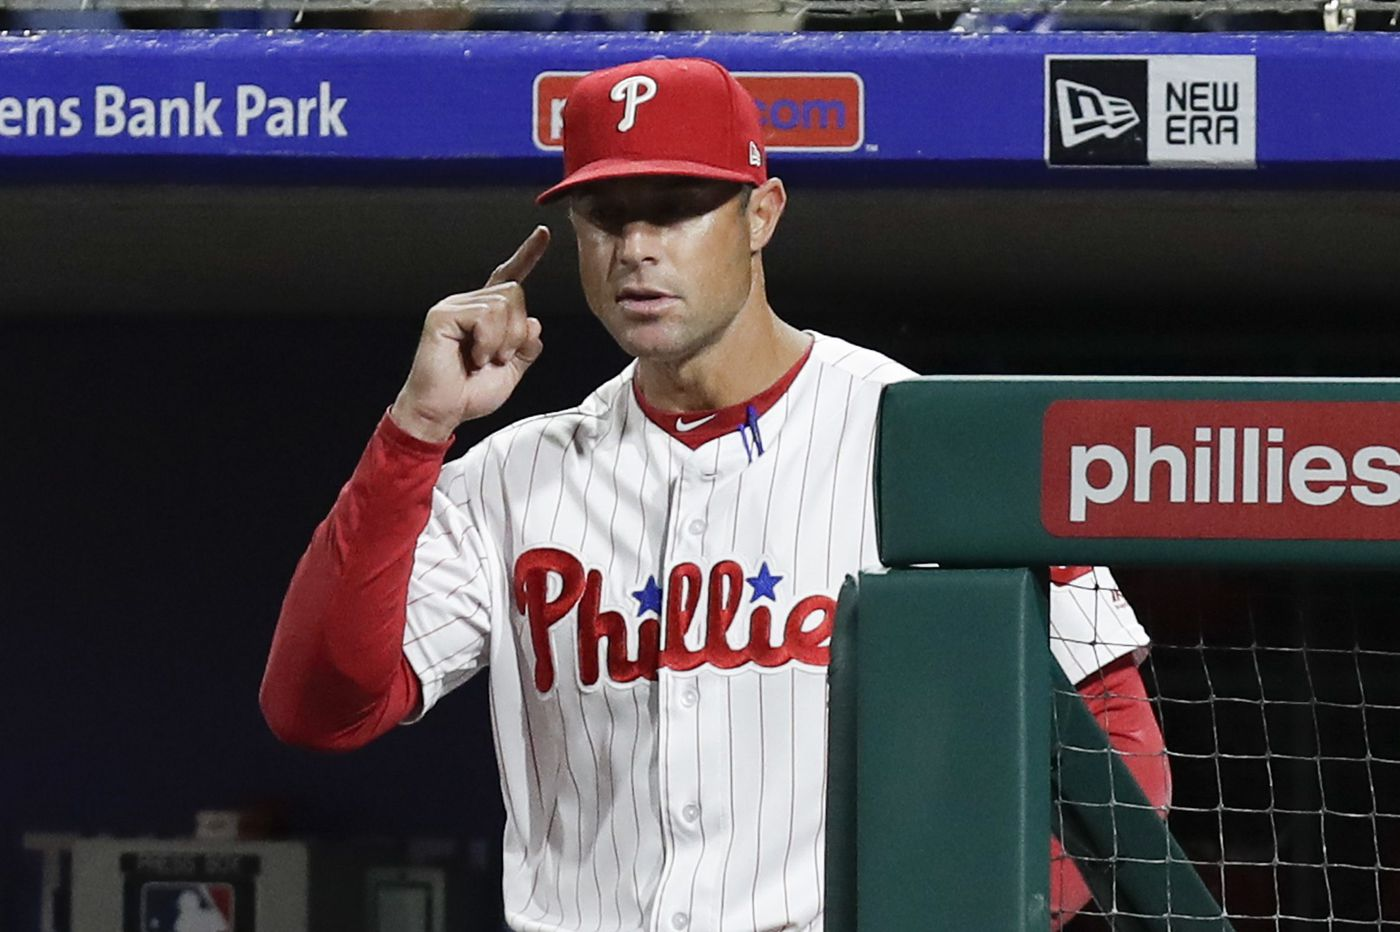 Why Phillies' manager Gabe Kapler stayed cool when his team collapsed